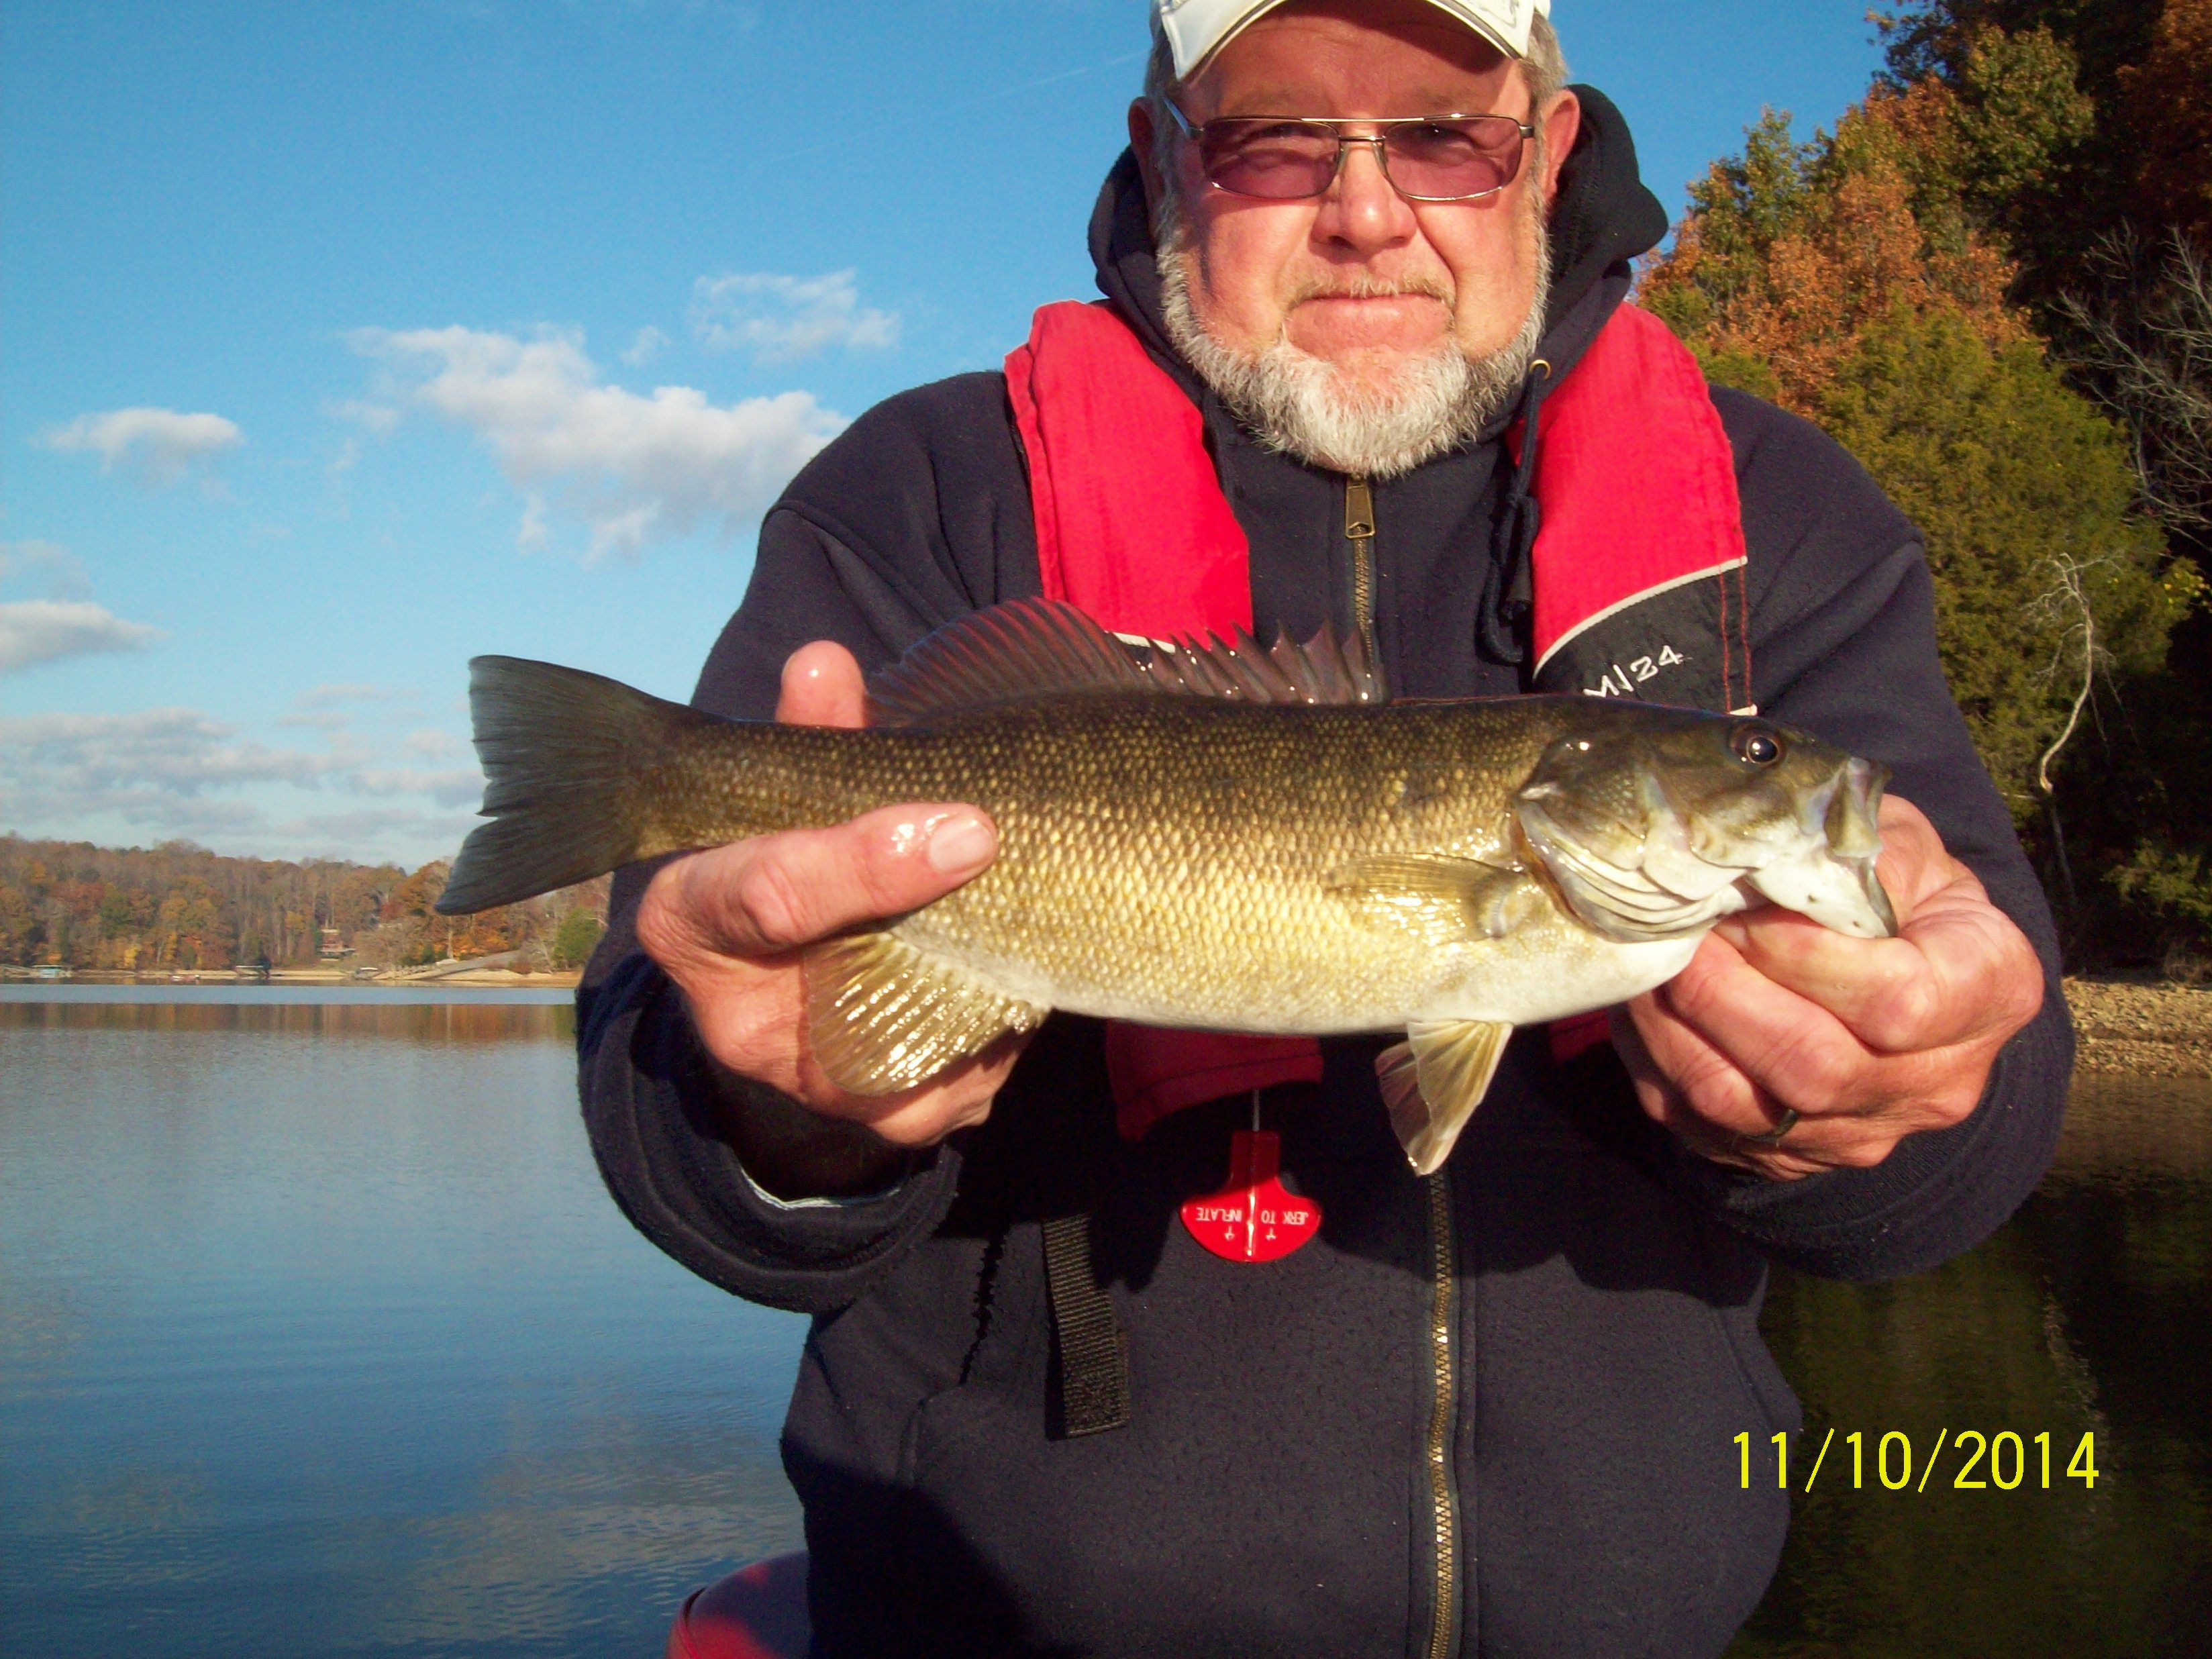 Tim s ford live bait wow 11 11 2014 tennessee bass guides for Bass fishing with live bait